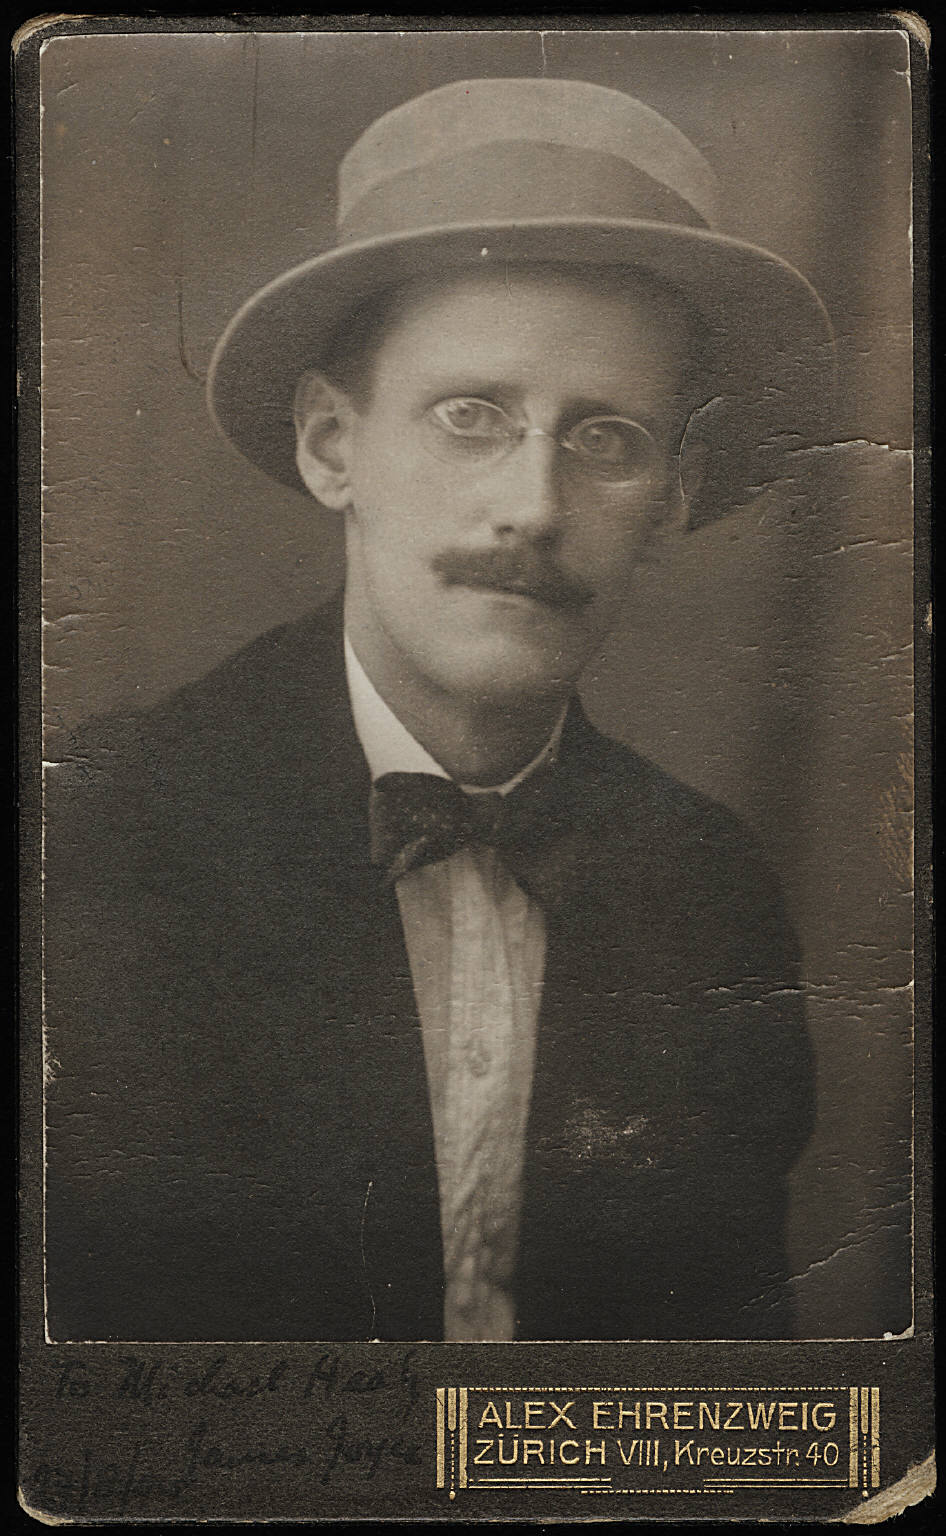 "i12bent:  James Joyce's Dubliners is his first substantial work - a collection of 15 short stories, first published in 1914… ""The Dead"" is the last and perhaps best of these stories, and ends like this: ""A few light taps upon the pane made him turn to the window. It had begun to snow again. He watched sleepily the flakes, silver and dark, falling obliquely against the lamplight. The time had come for him to set out on his journey westward. Yes, the newspapers were right: snow was general all over Ireland. It was falling on every part of the dark central plain, on the treeless hills, falling softly upon the Bog of Allen and, farther westward, softly falling into the dark mutinous Shannon waves. It was falling, too, upon every part of the lonely churchyard on the hill where Michael Furey lay buried. It lay thickly drifted on the crooked crosses and headstones, on the spears of the little gate, on the barren thorns. His soul swooned slowly as he heard the snow falling faintly through the universe and faintly falling, like the descent of their last end, upon all the living and the dead."" ― James Joyce, The Dead - from  Dubliners  Photo of Joyce by Alex Ehrenzweig, Zürich - 1915"